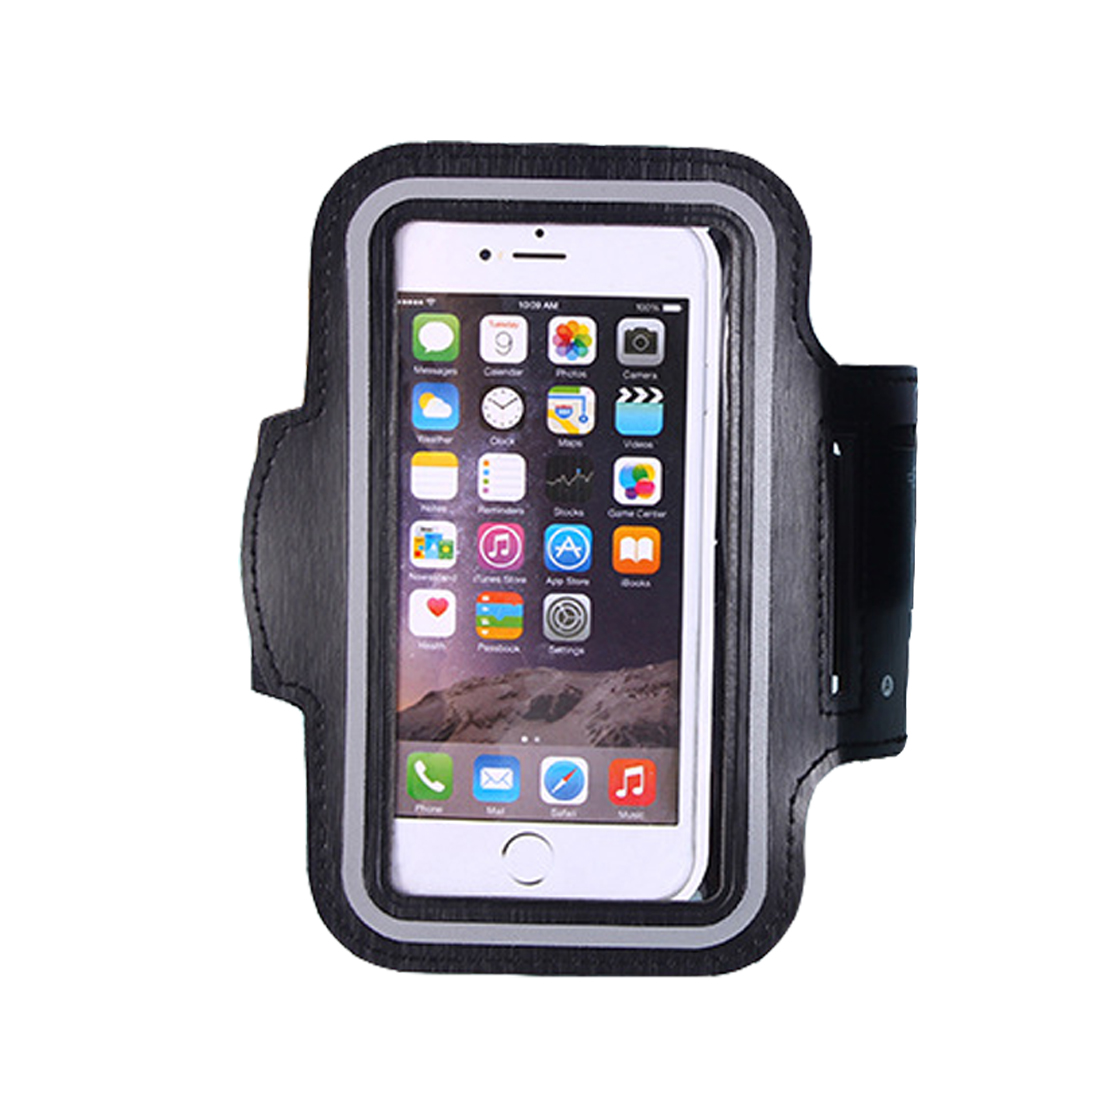 Candid Etmakit Running Durable Jogging Sports Gym Arm Band Strap Case Cover For Iphone 7 6 6s 6 Plus 5 5s 5c Se Waterof Phone Bag Case